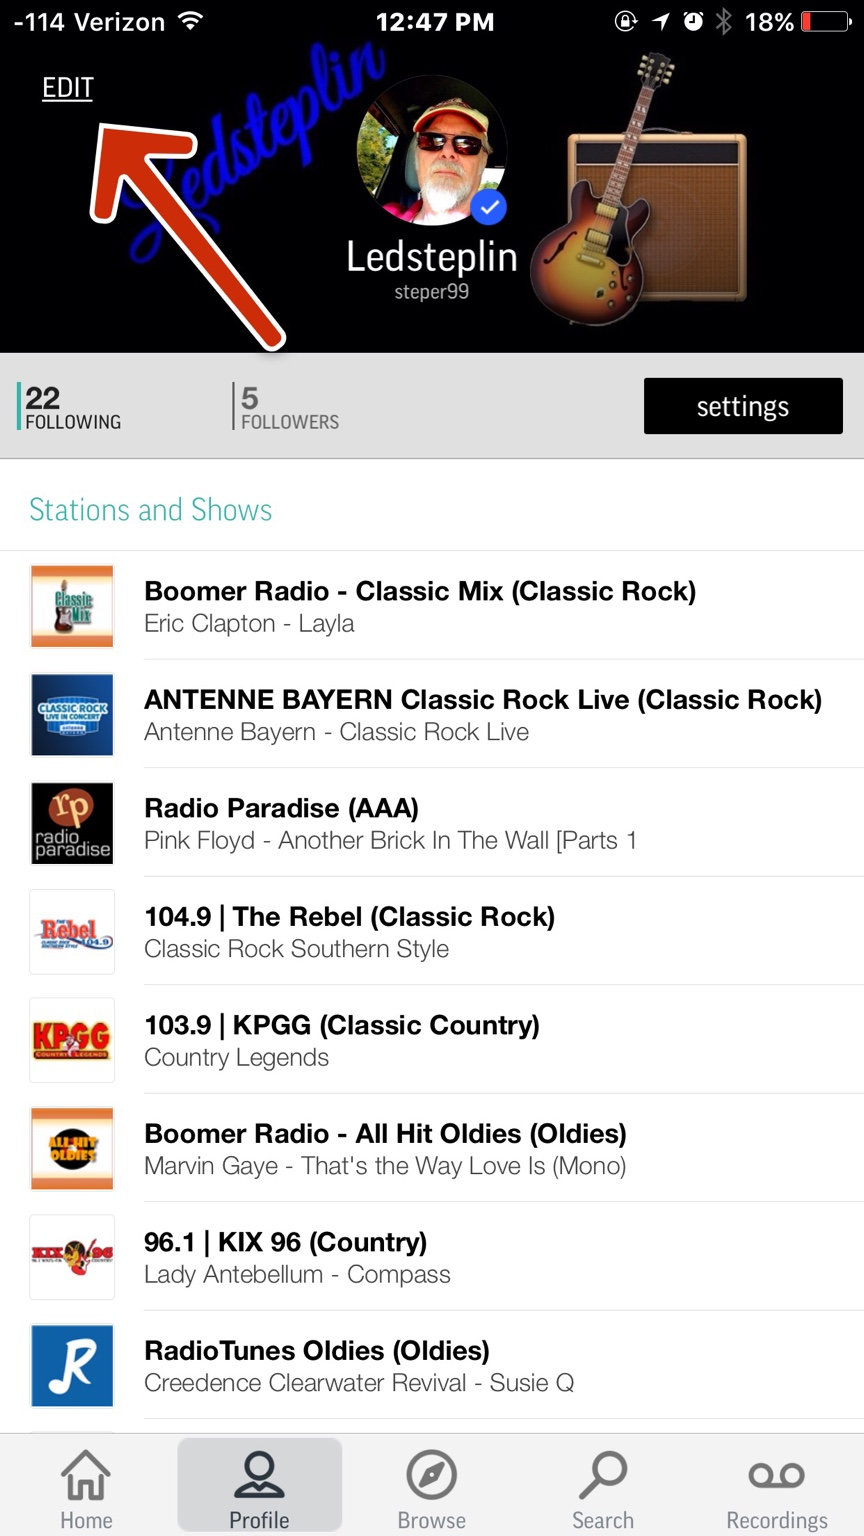 How can i delete some of my radio channels from my Tune In